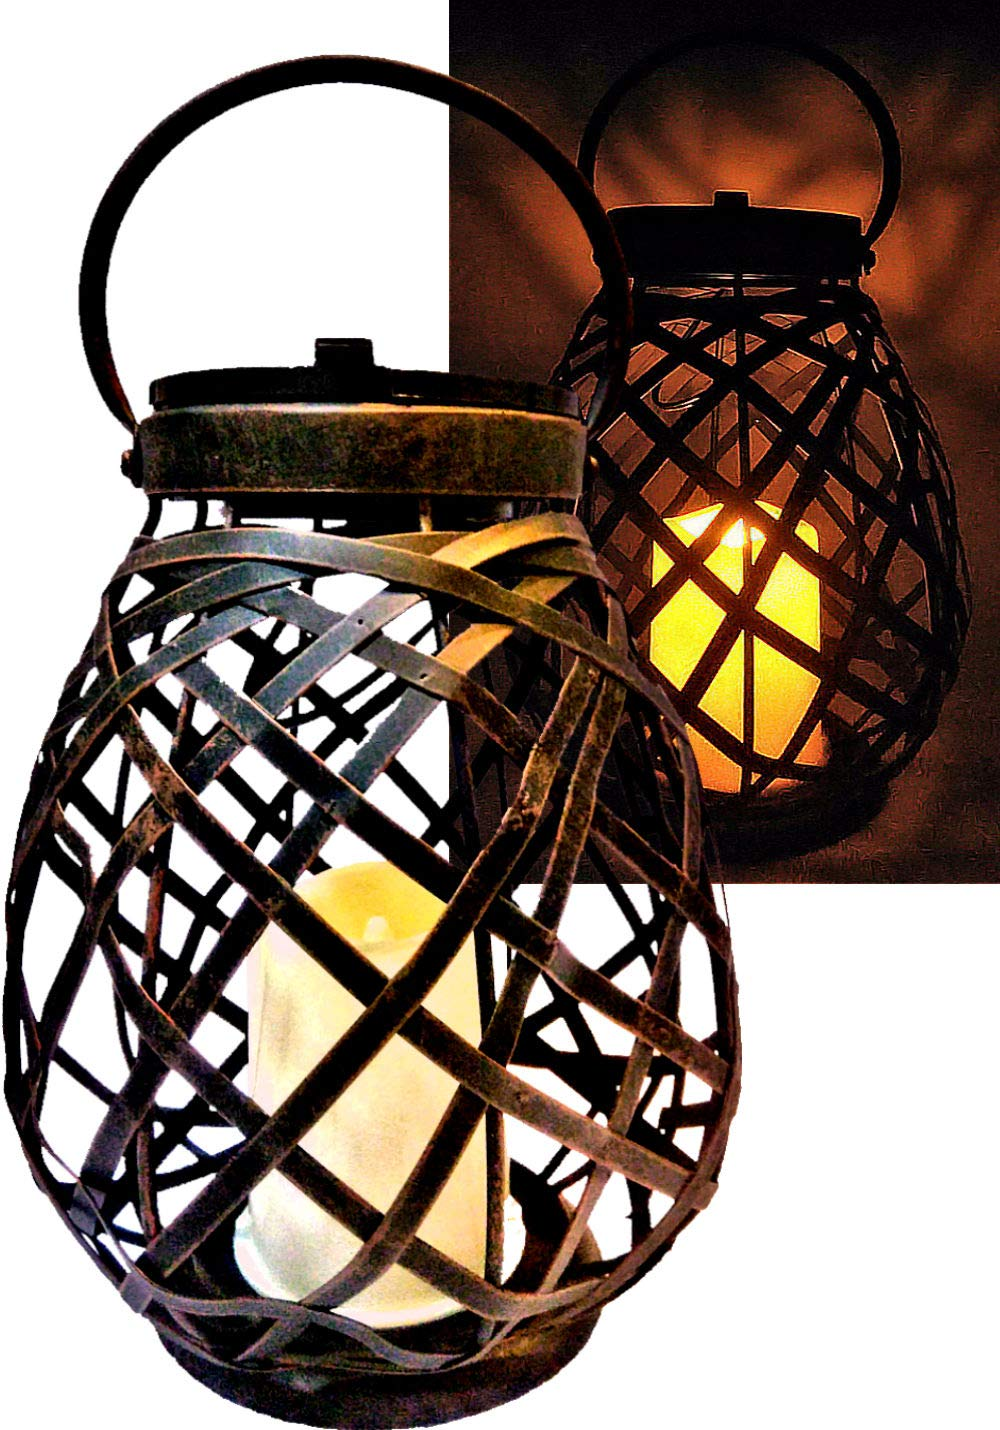 Brilliant & Mo Metal Rattan Solar Hanging Lanterns for Outdoors Garden Decoration with Flickering Candle Light For Home Patio Deck Lawn Yard Decor by BRILLIANT AND MO